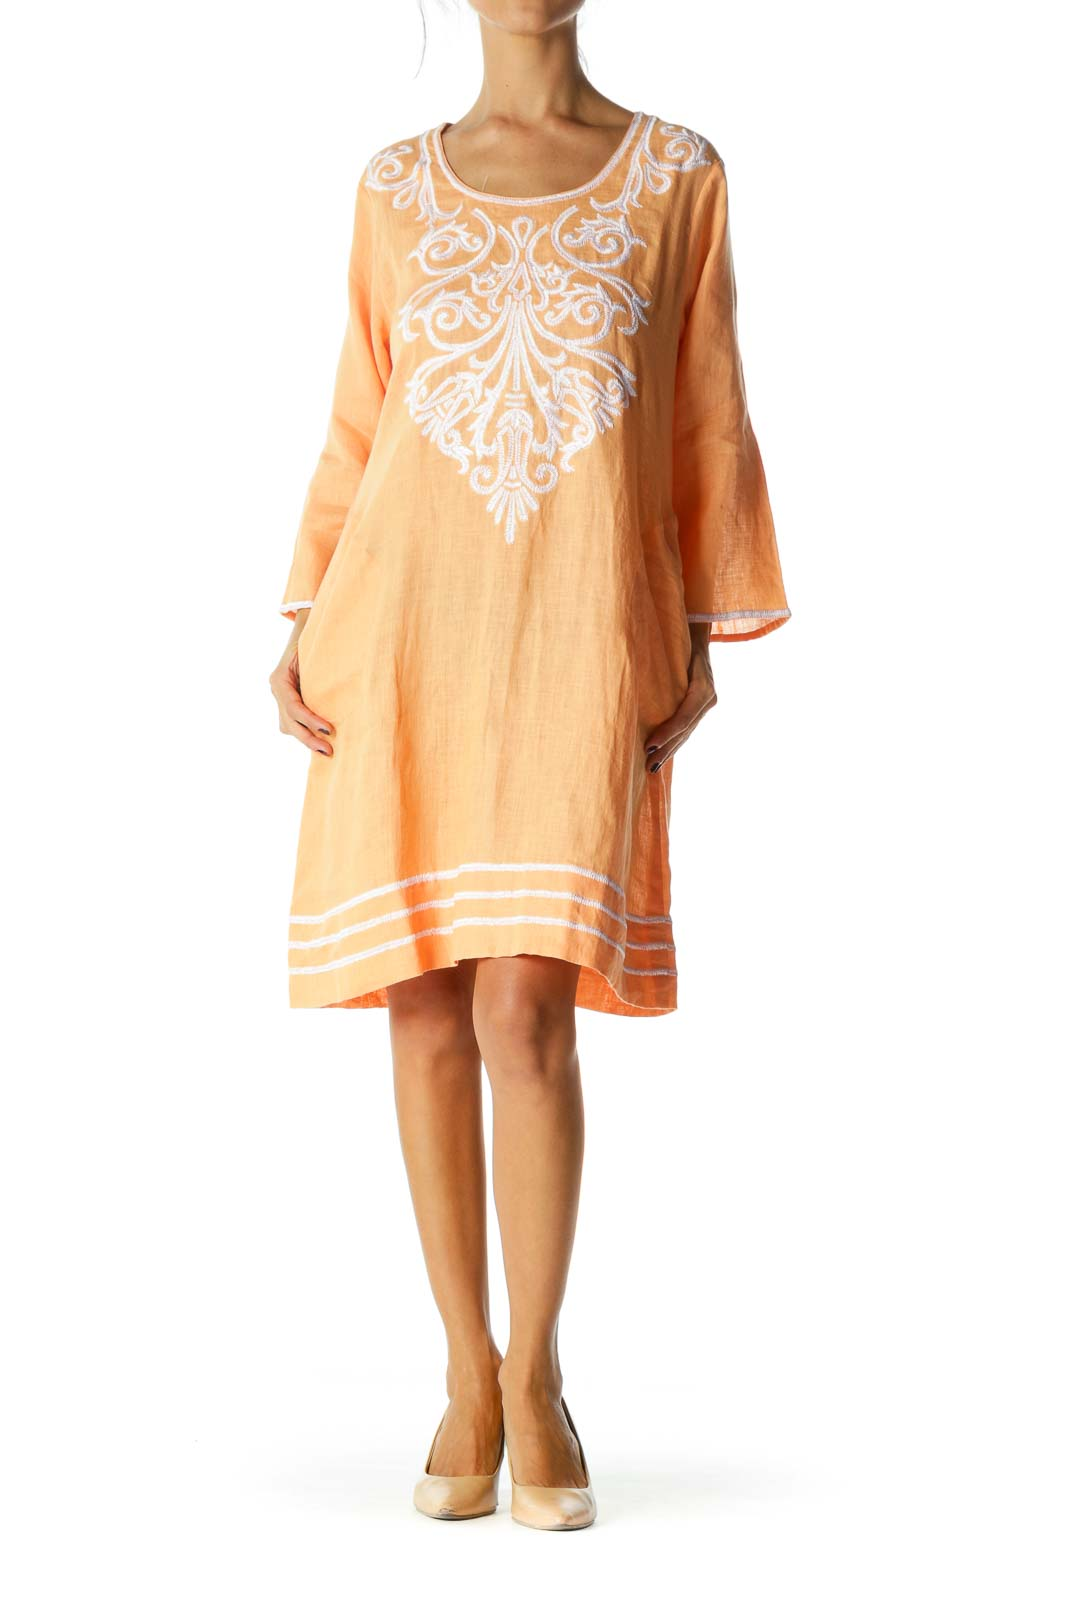 Orange Round Neck Embroidered Long Sleeve Day Dress